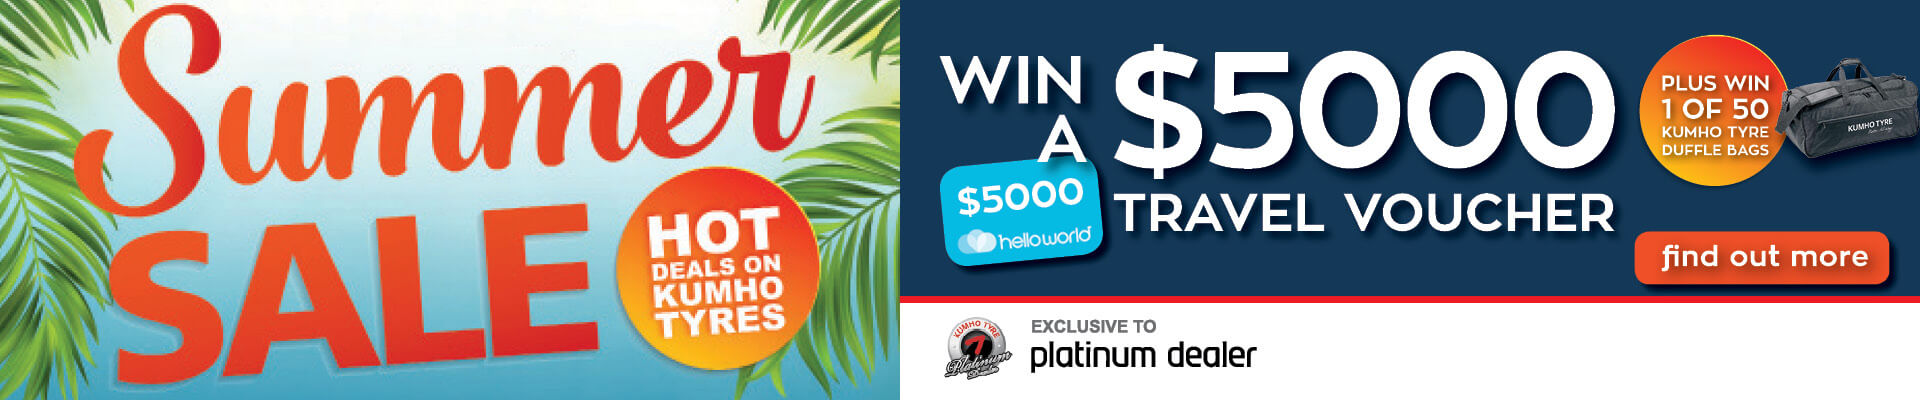 Kumho Tyre Summer Sale - Win $5000 Travel Voucher